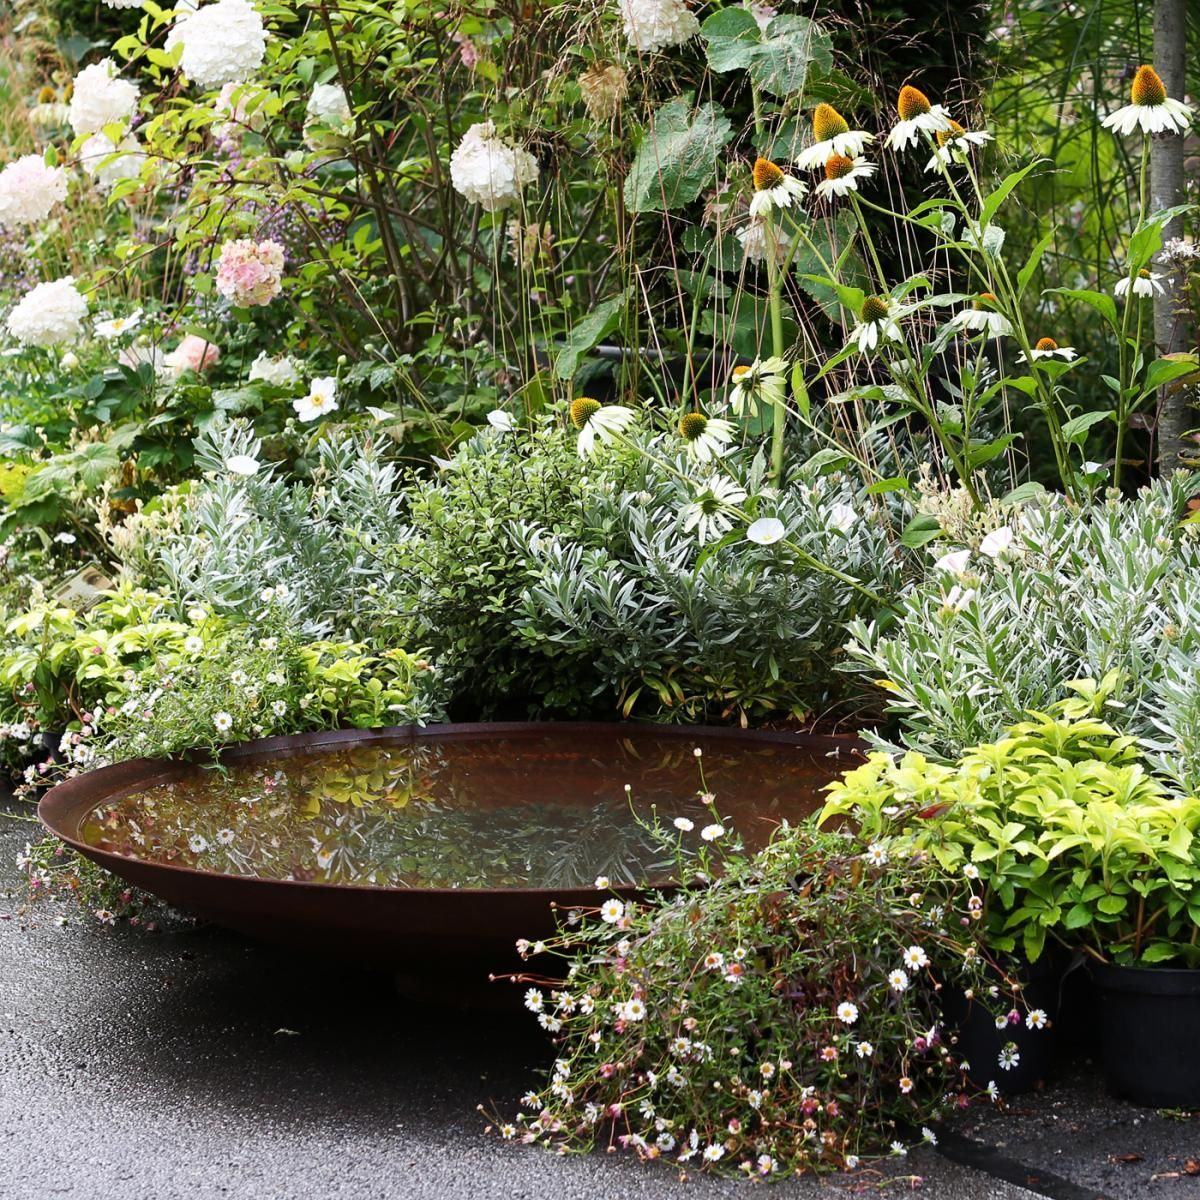 Wildlife Pond Surrounded By Pebbles: Sugar Kettle LOVE THIS GLORIOUS POND, SURROUNDED BY A